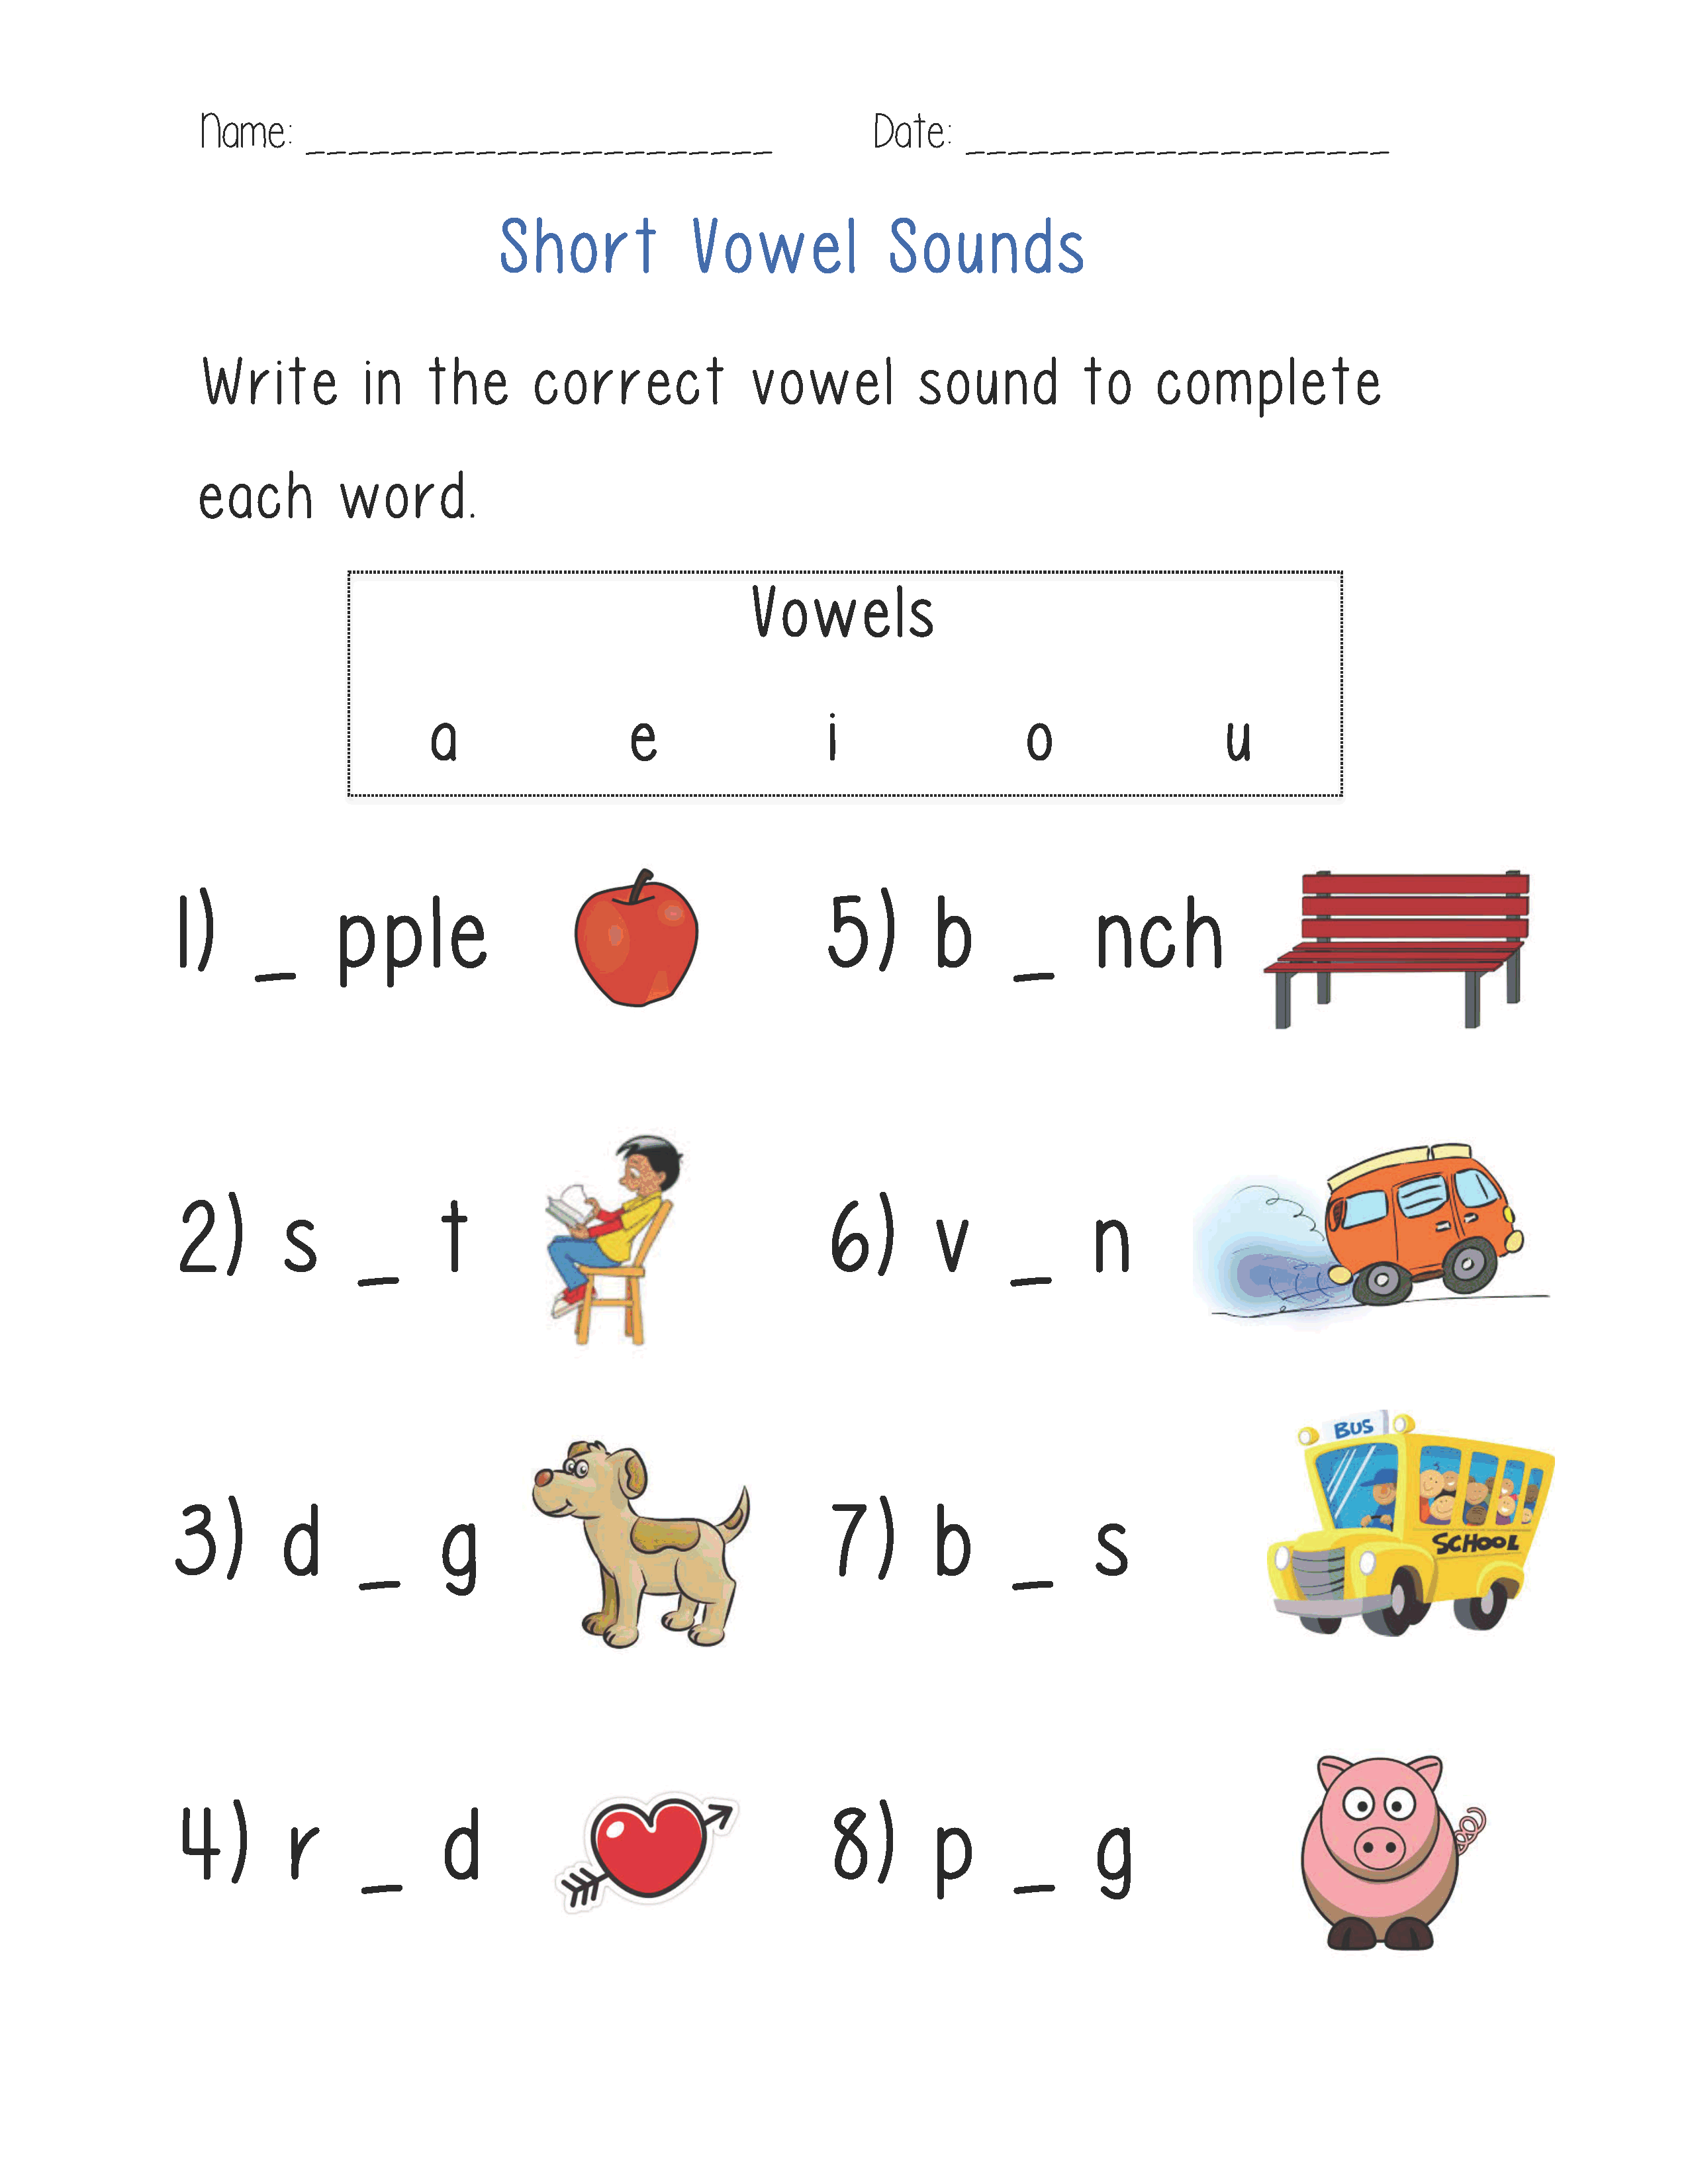 Vowels Worksheets – Short Vowel Sounds Worksheets for Kindergarten